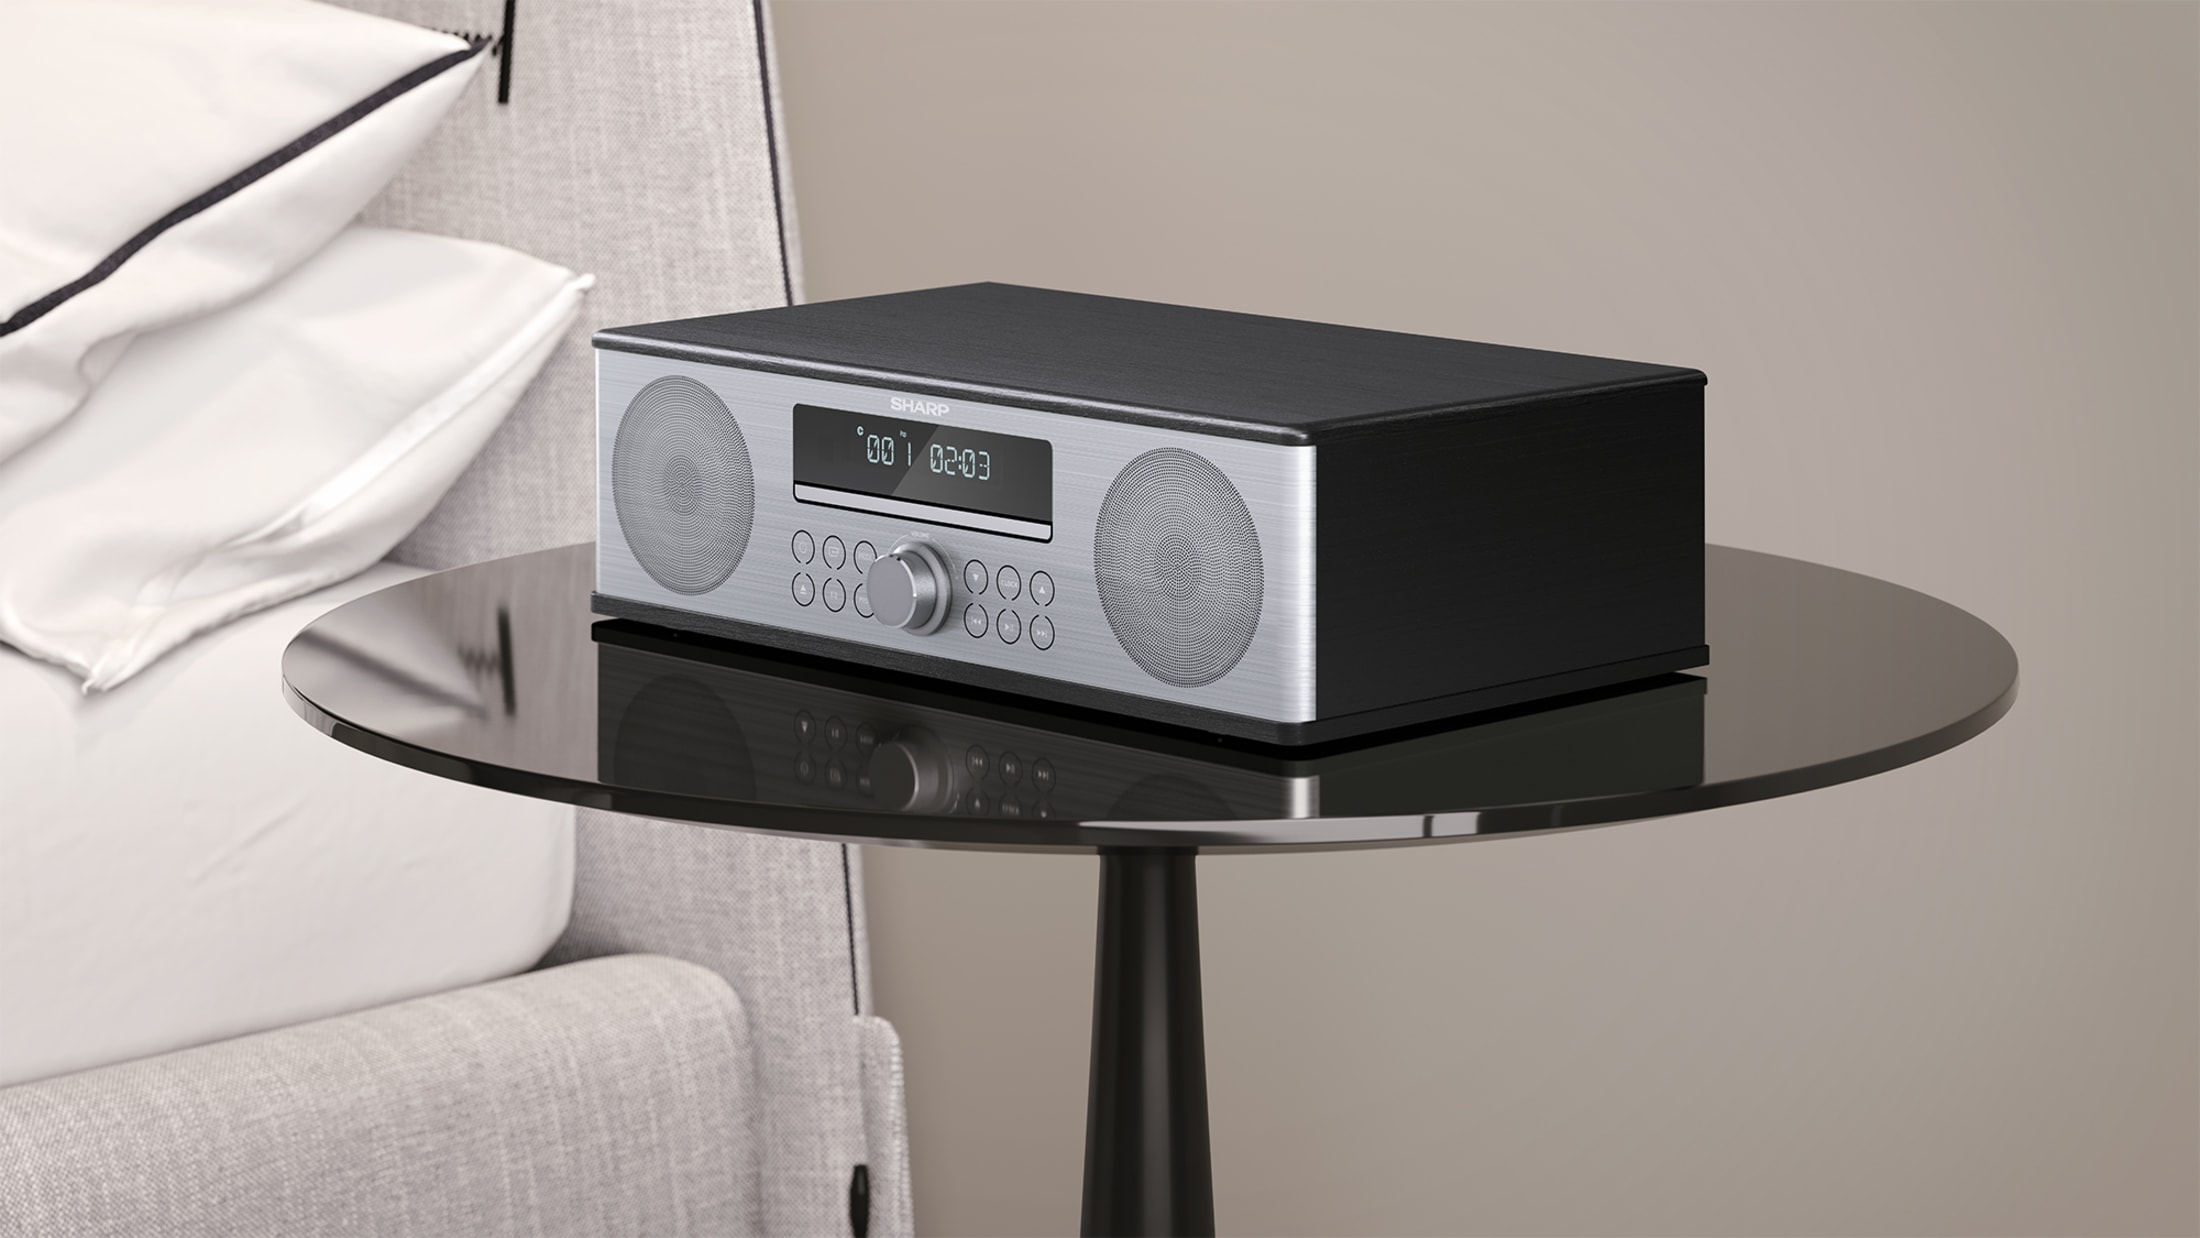 All-in-One Stereo Sound System, 90 W, reddot design award winner 2018, with Bluetooth wireless music streaming, CD player, FM tuner and remote control.